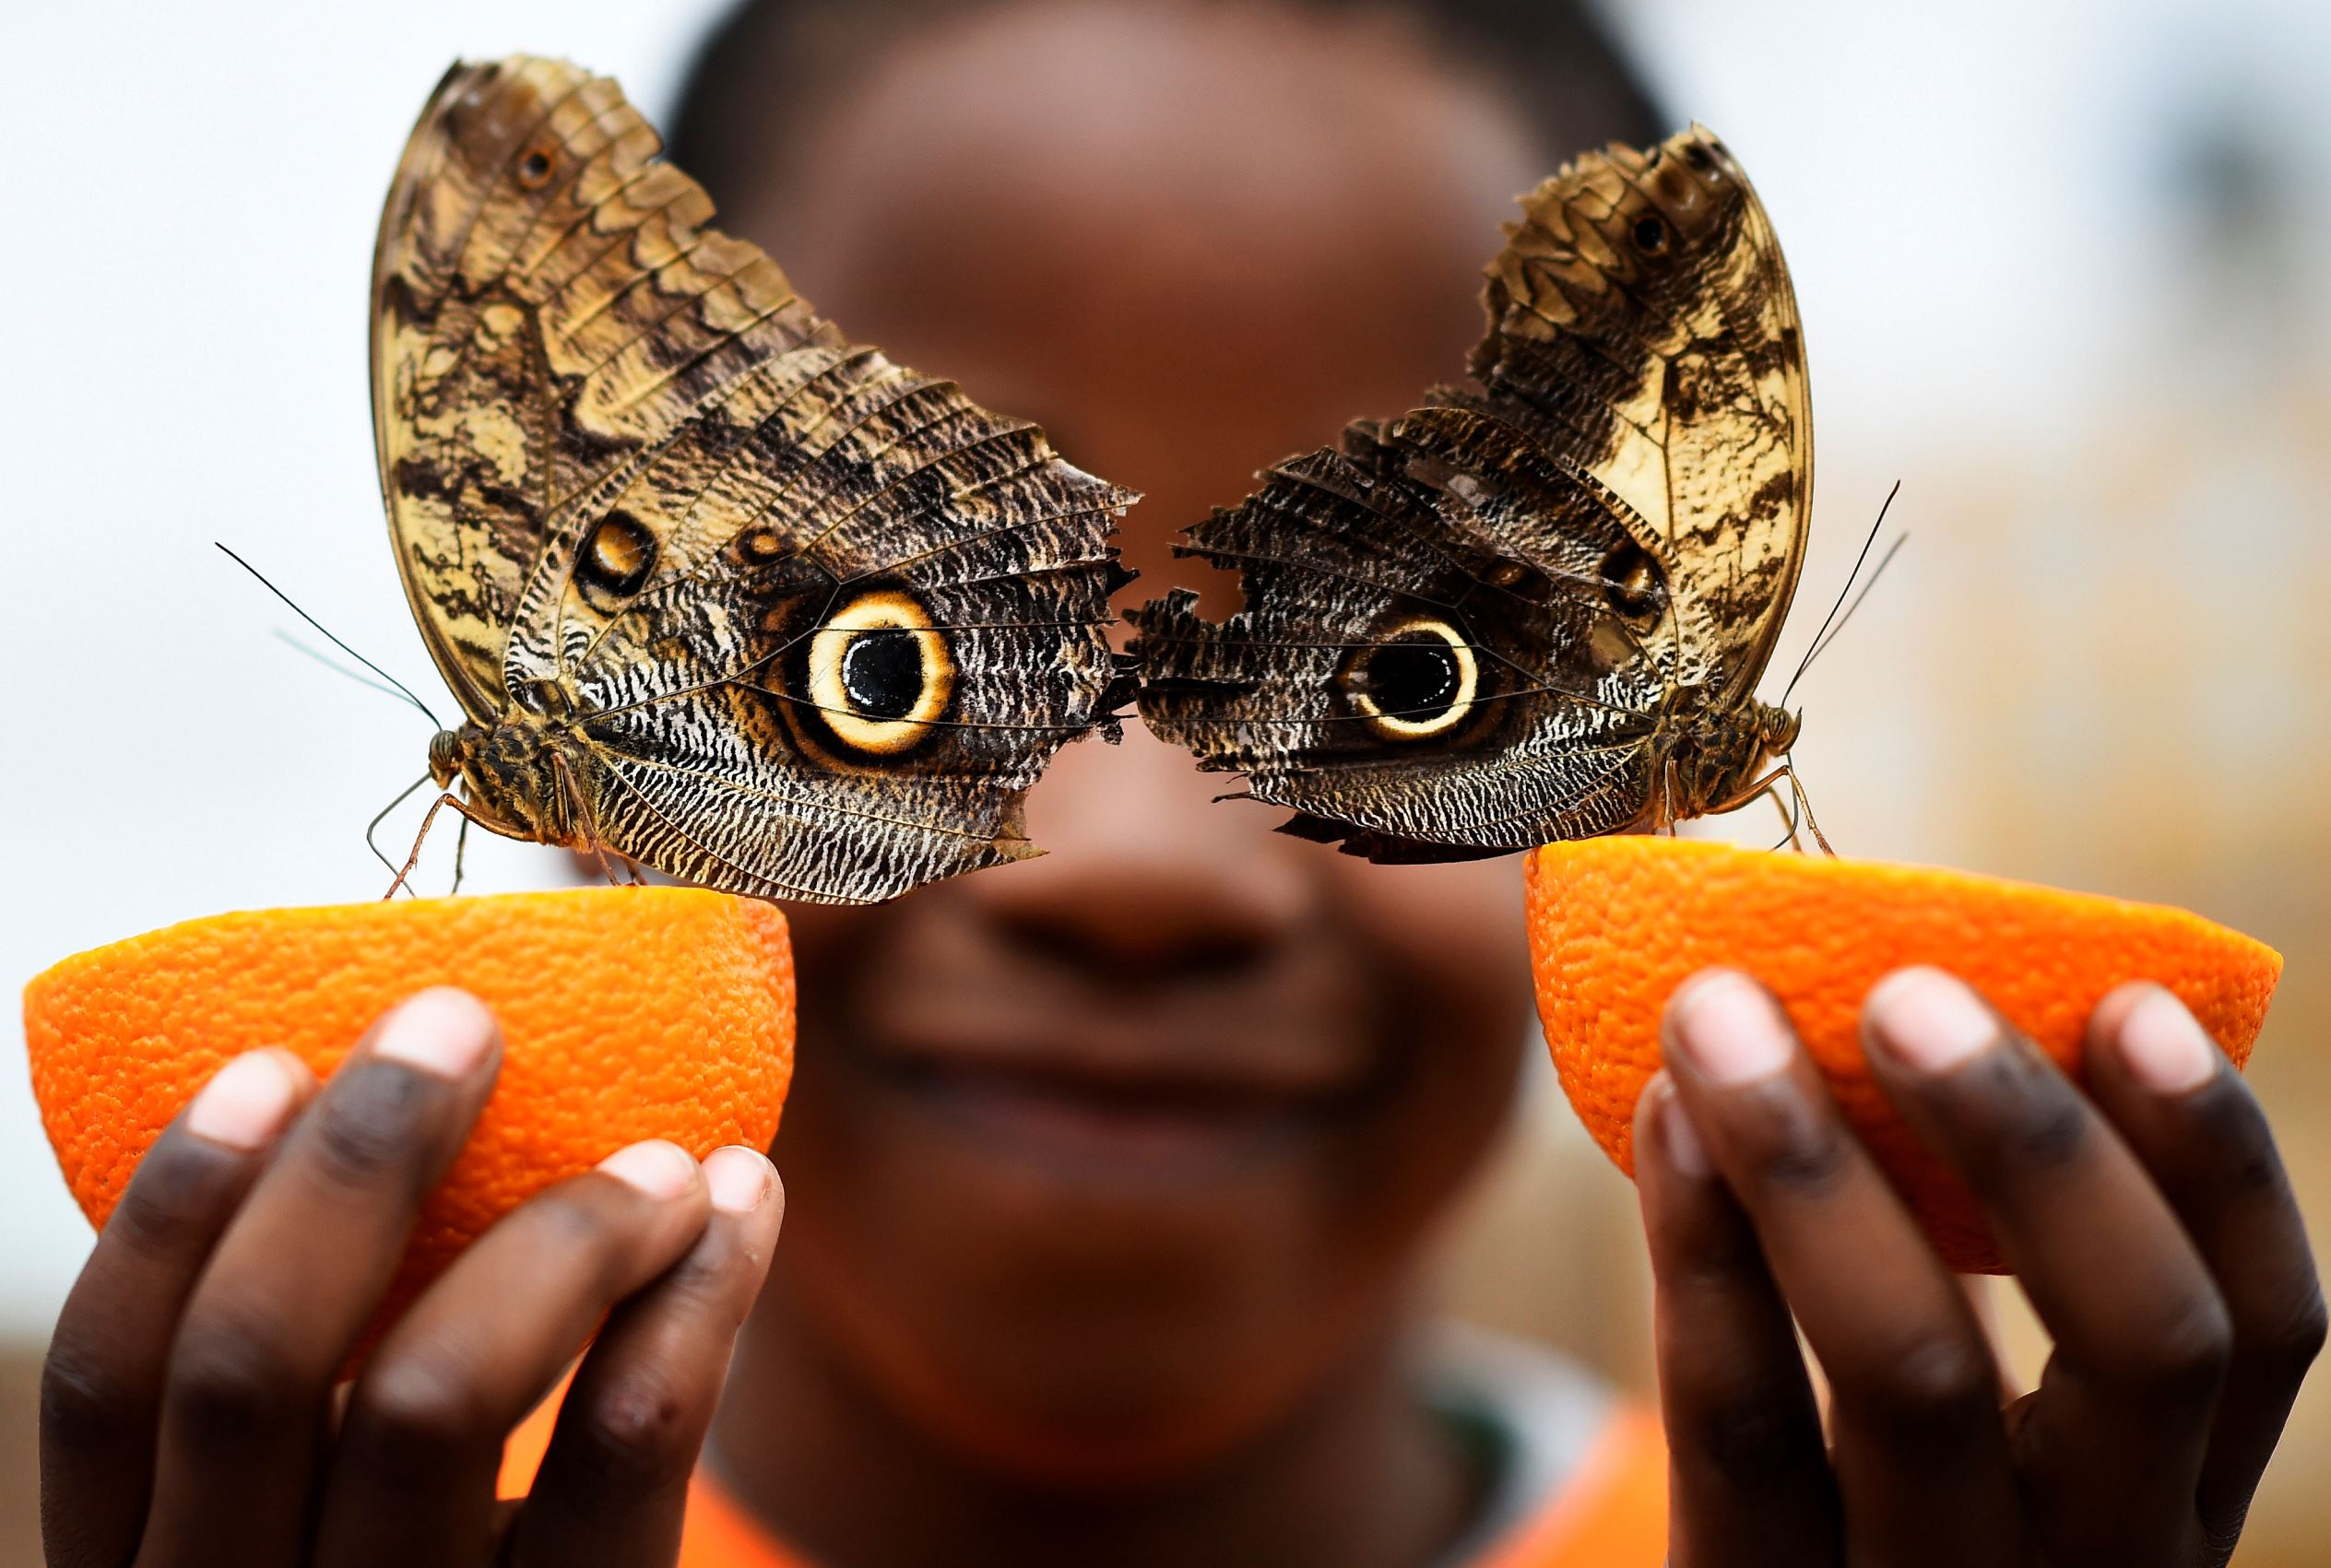 Слайд 53 из 67: Bjorn, aged 5, smiles as he poses with a Owl butterfly during an event to launch the Sensational Butterflies exhibition at the Natural History Museum in London, Britain March 23, 2016.